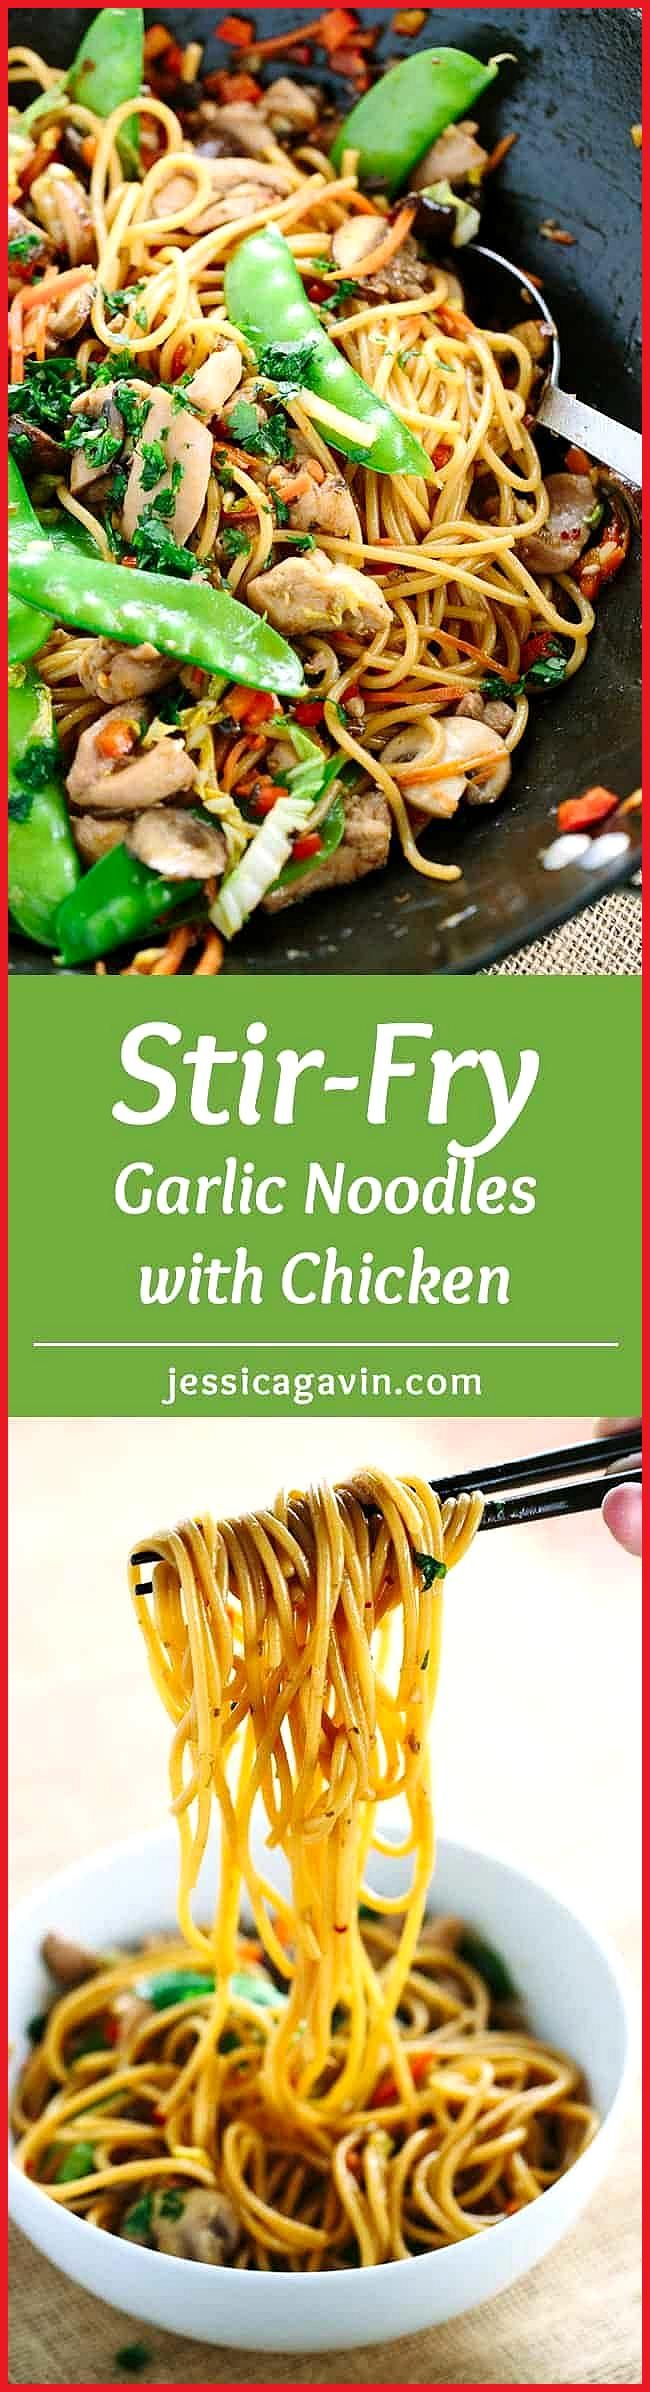 Stir-Fried Garlic Noodles with Chicken Stir-fried garlic noodles served with tender pieces of chick